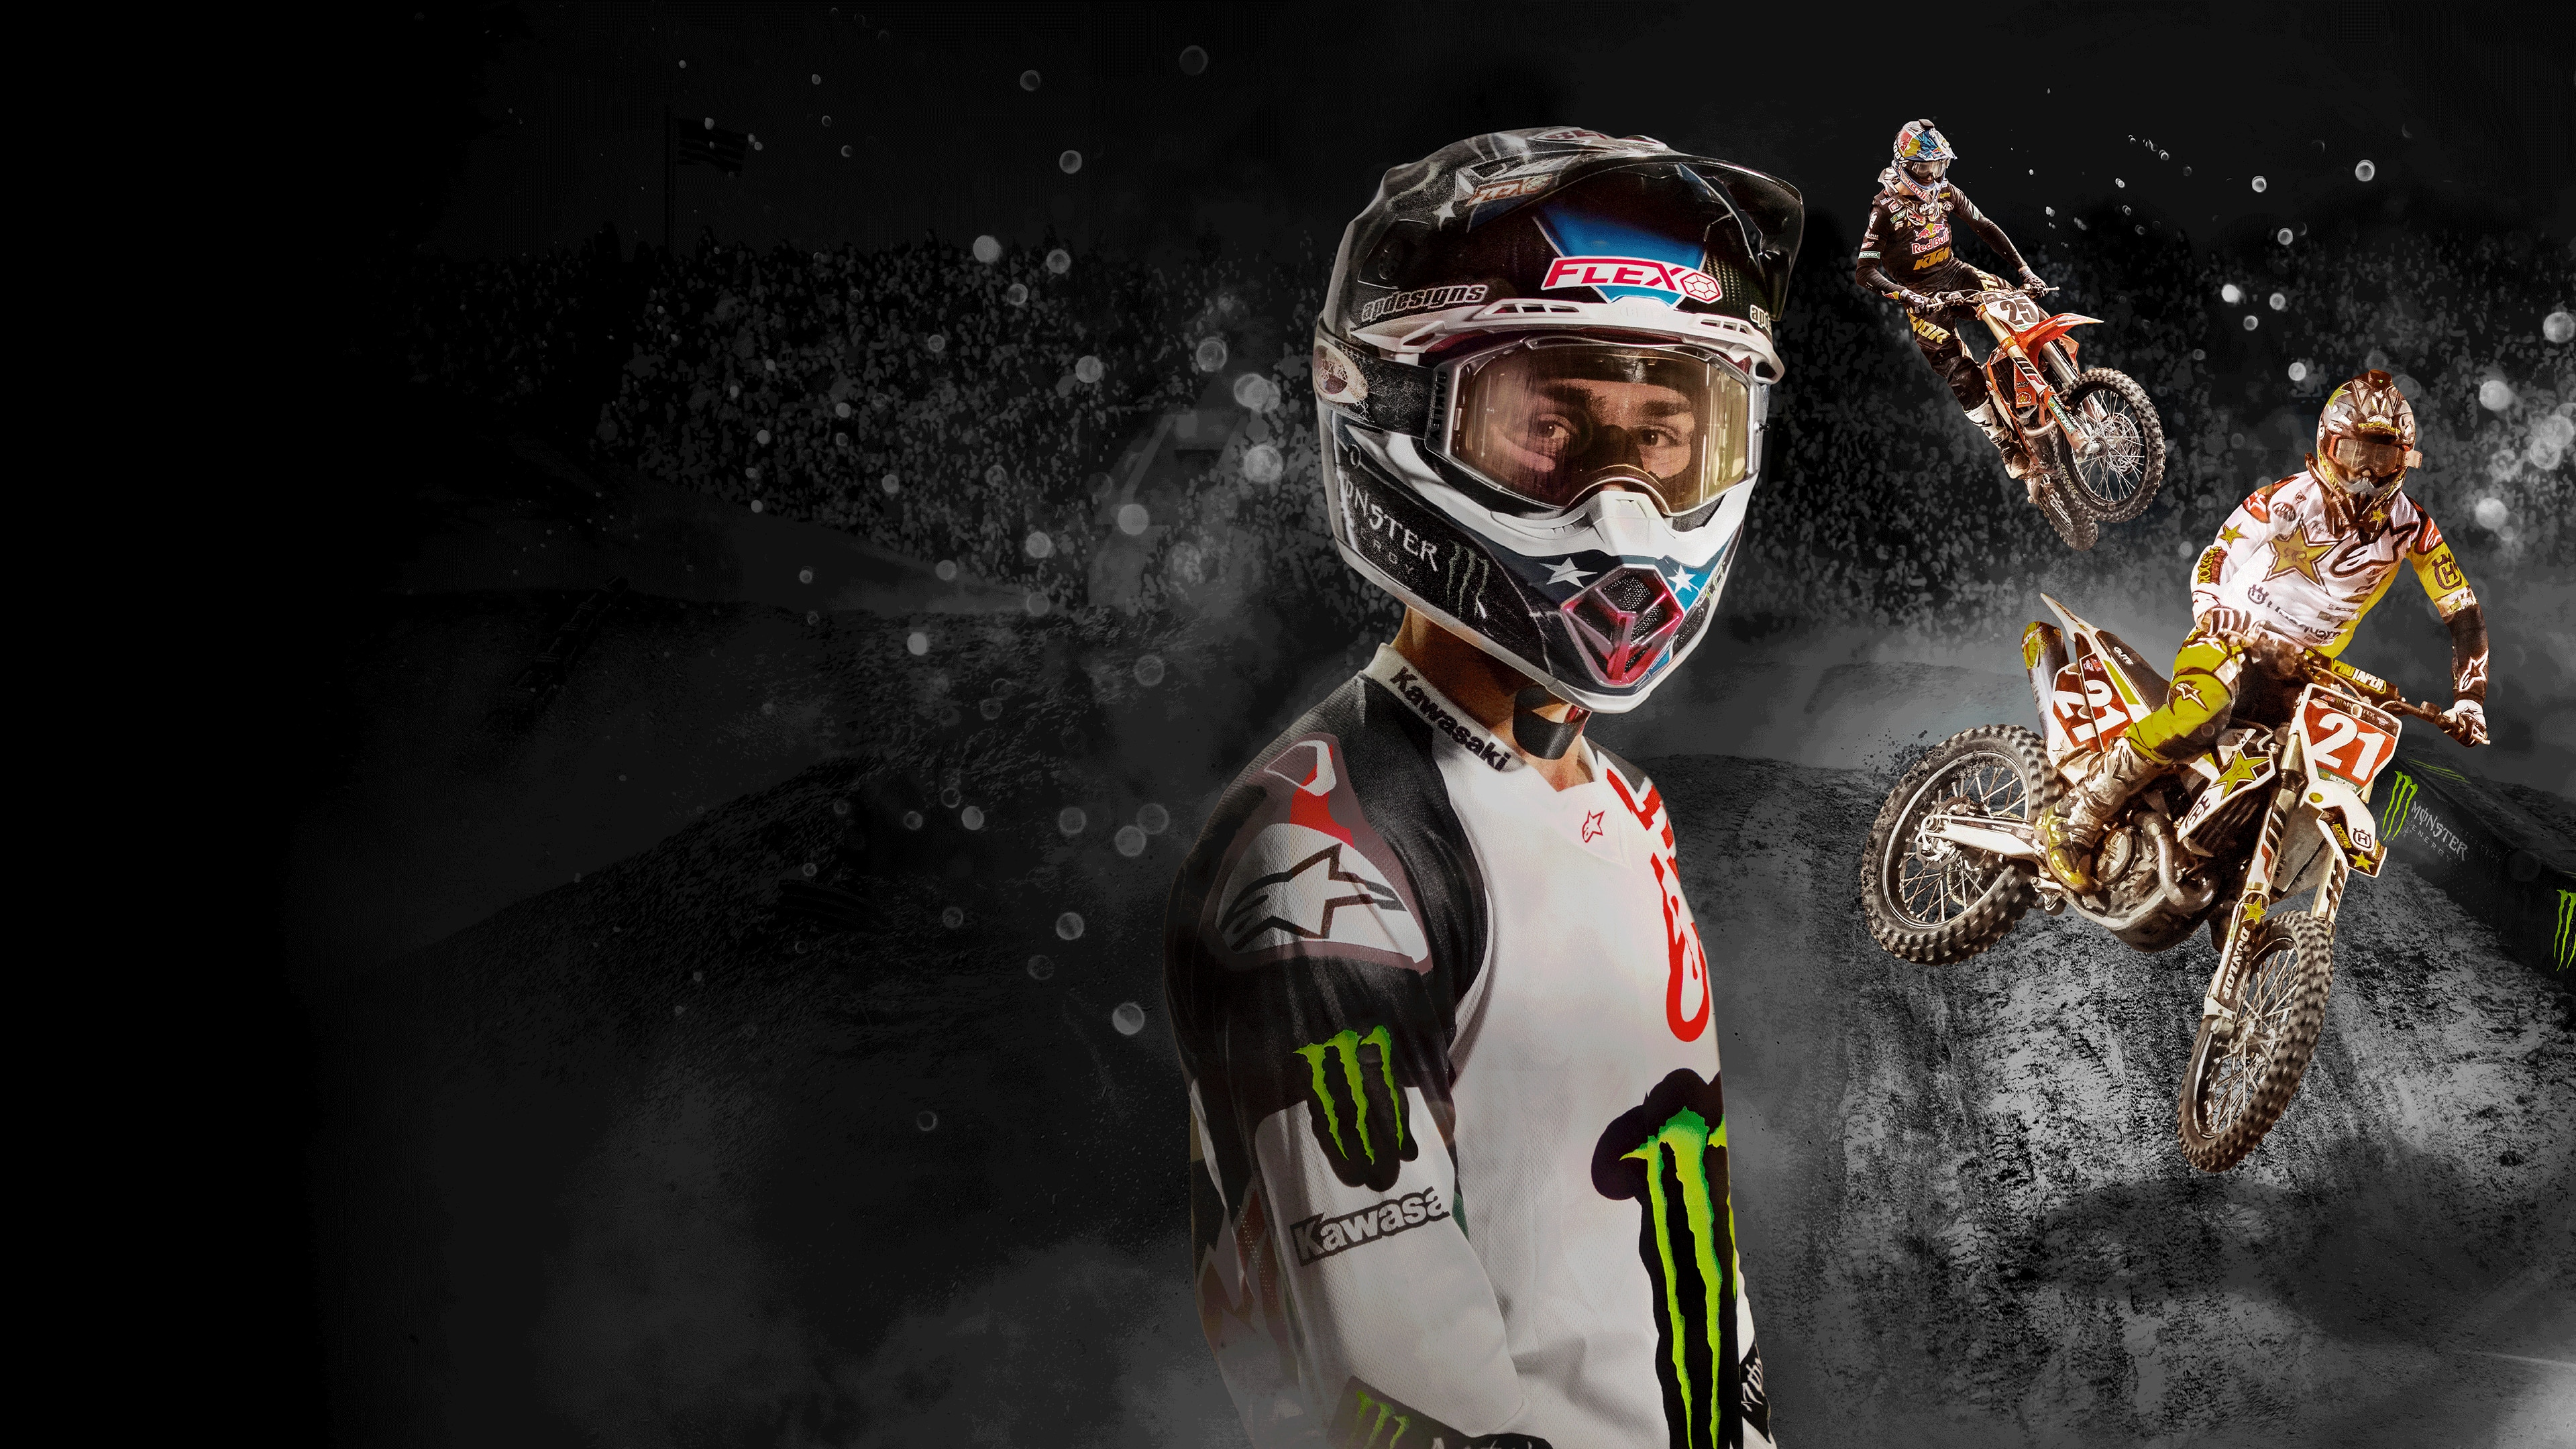 Monster Energy Supercross 2 - Special Edition